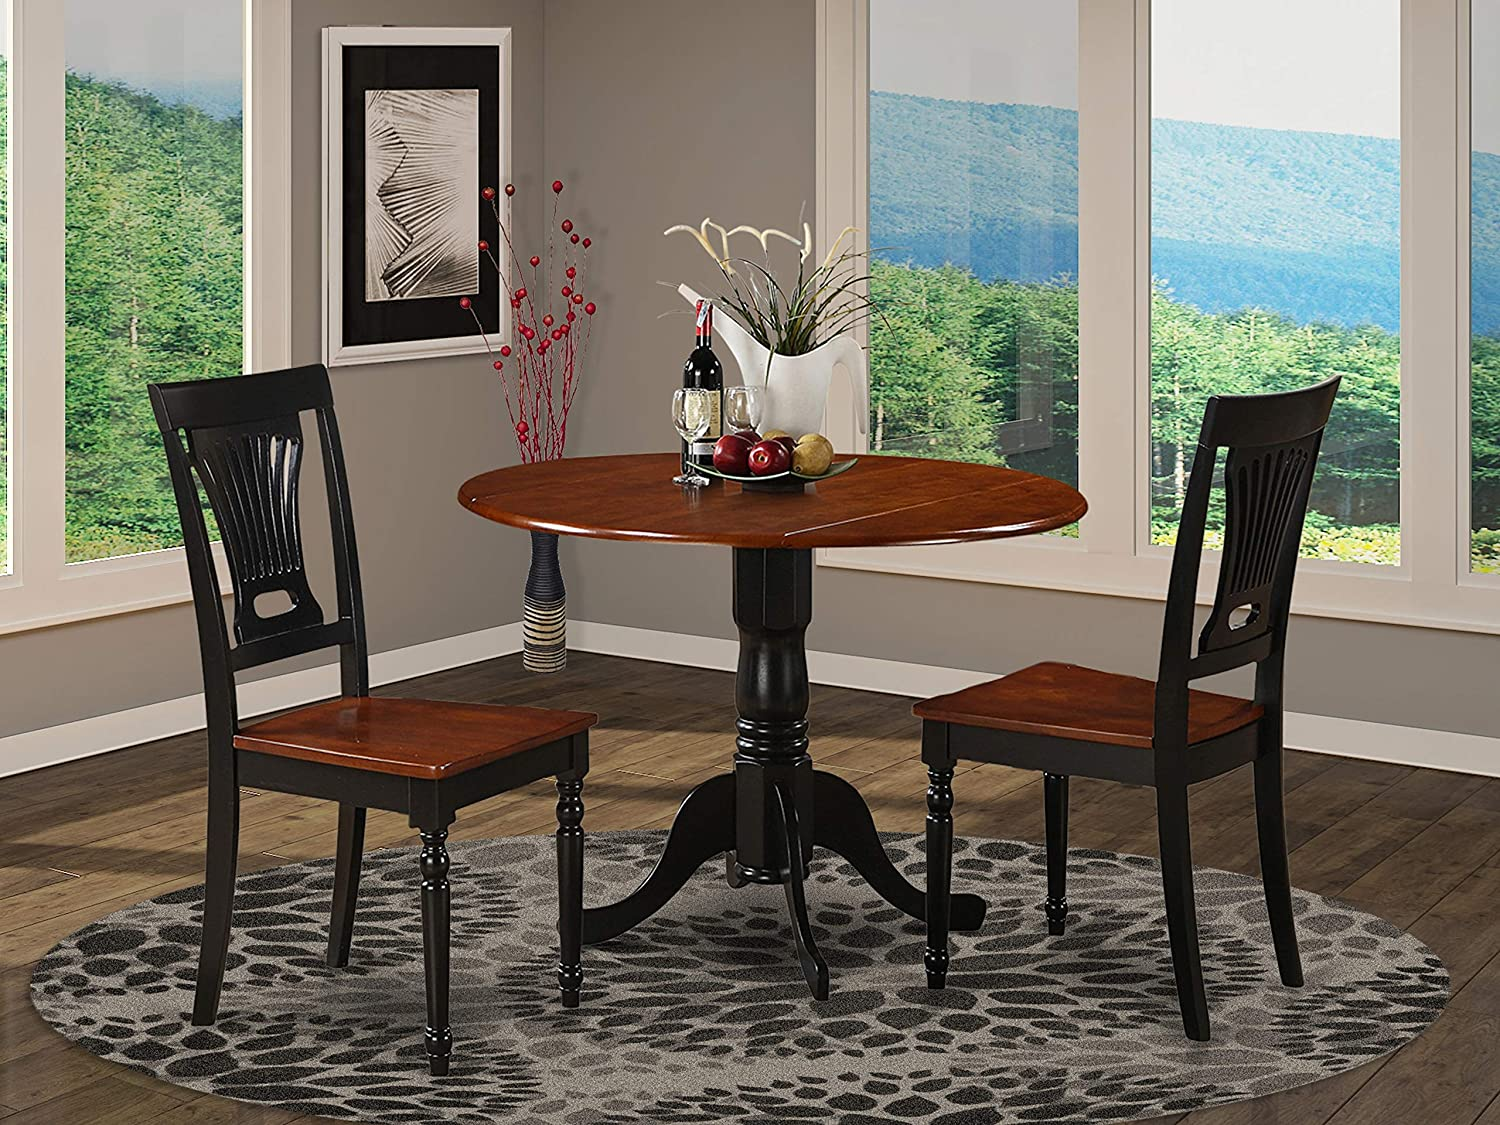 DLPL3-BCH-W 3 Pc small Kitchen Table and Chairs set-round Table and 2 dinette Chairs.